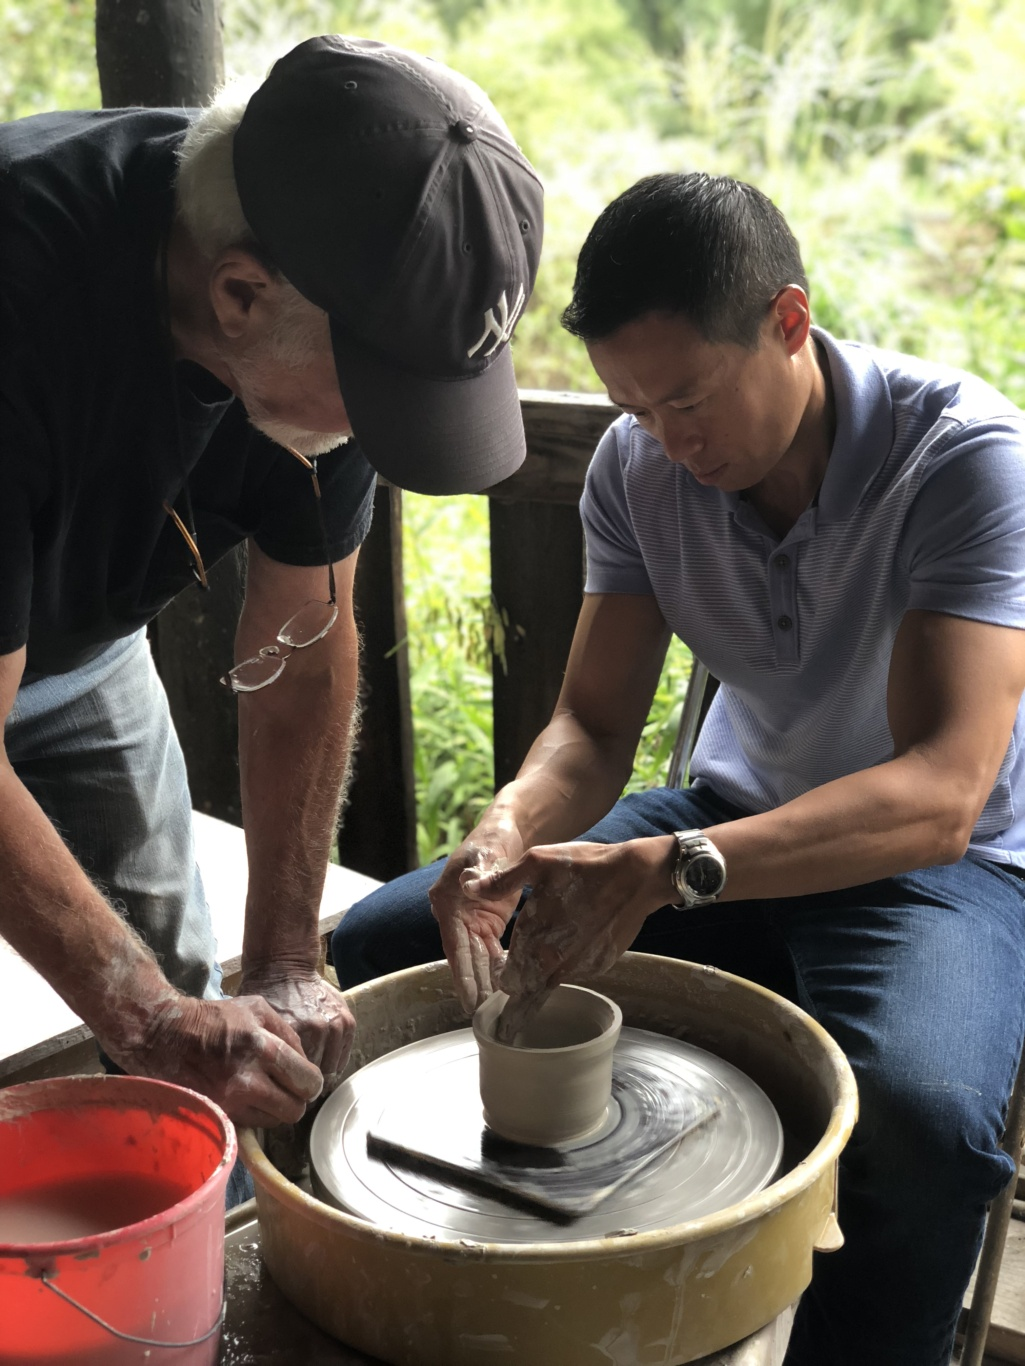 Jeff Shen and Richard Busch at a pottery wheel